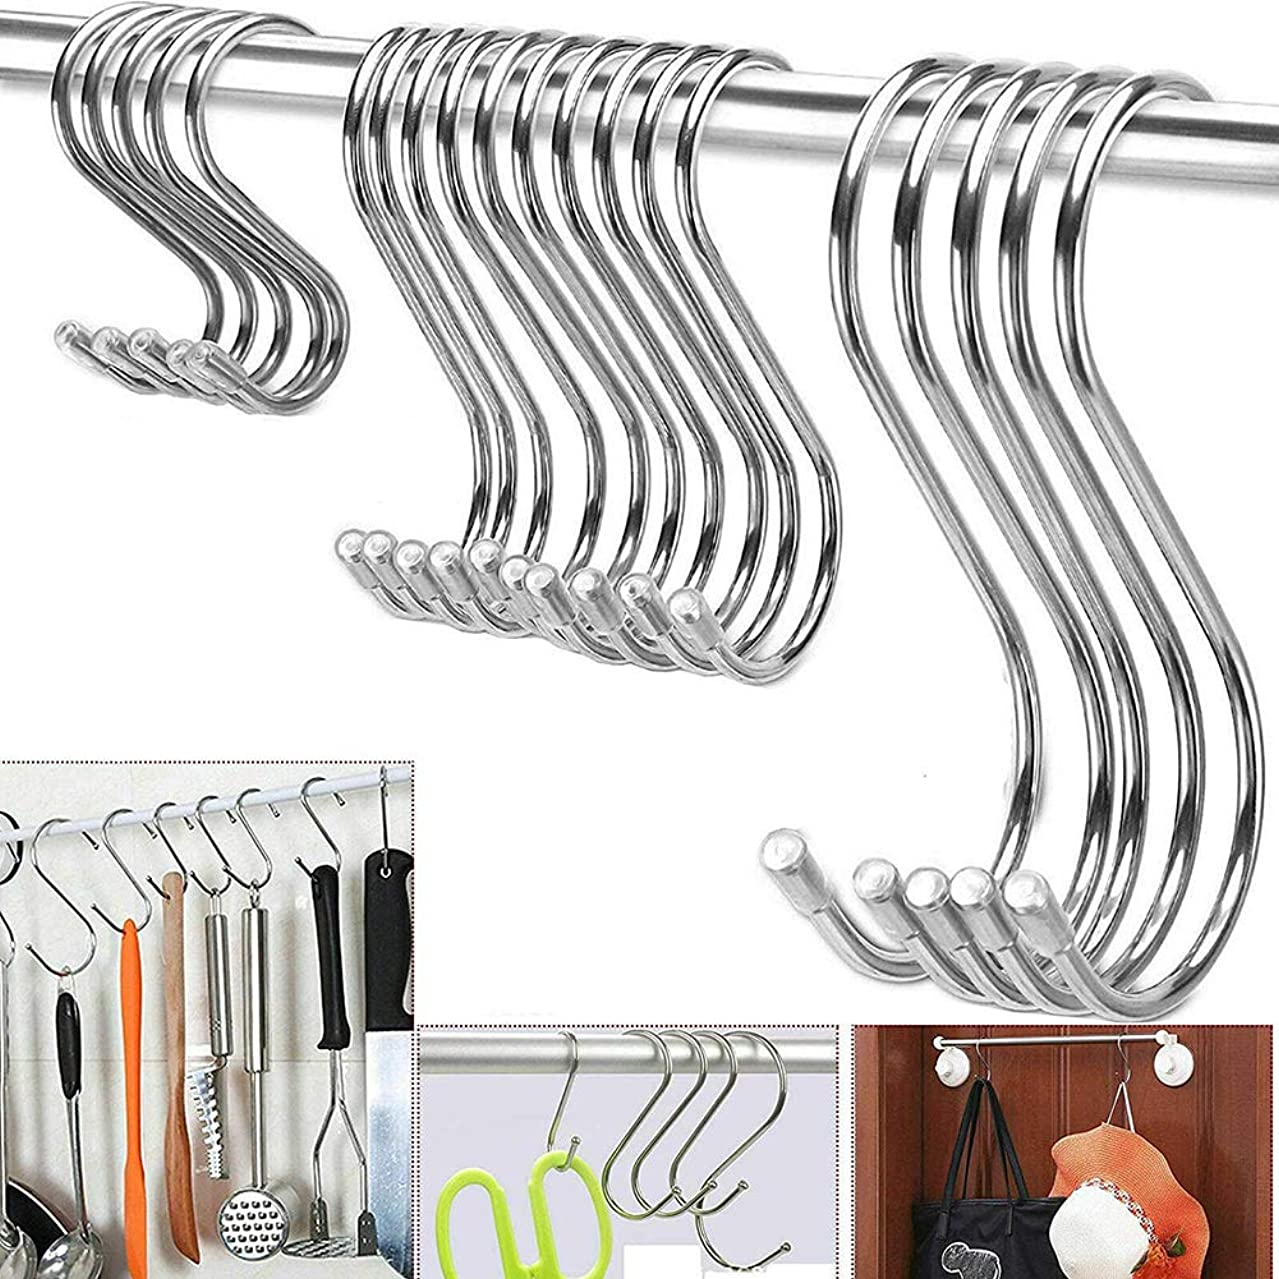 Stainless Steel Heavy Duty Hanging Hooks S Hook 10 Packs Set - Metal Utility Hooks for Home Storage Organization Pan Pot Holder Clothes Hanger (Silver, 3 Inch/Thicker)